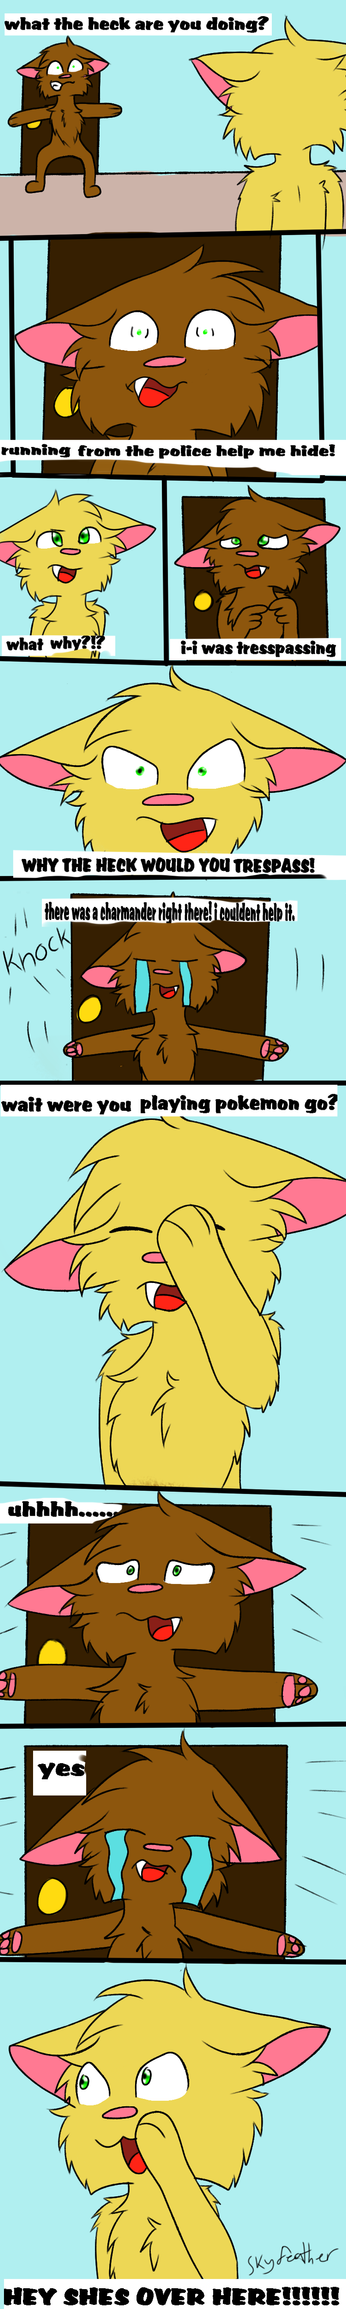 adventures of clover pg 1 'Pokemon go' by skyfeather0066